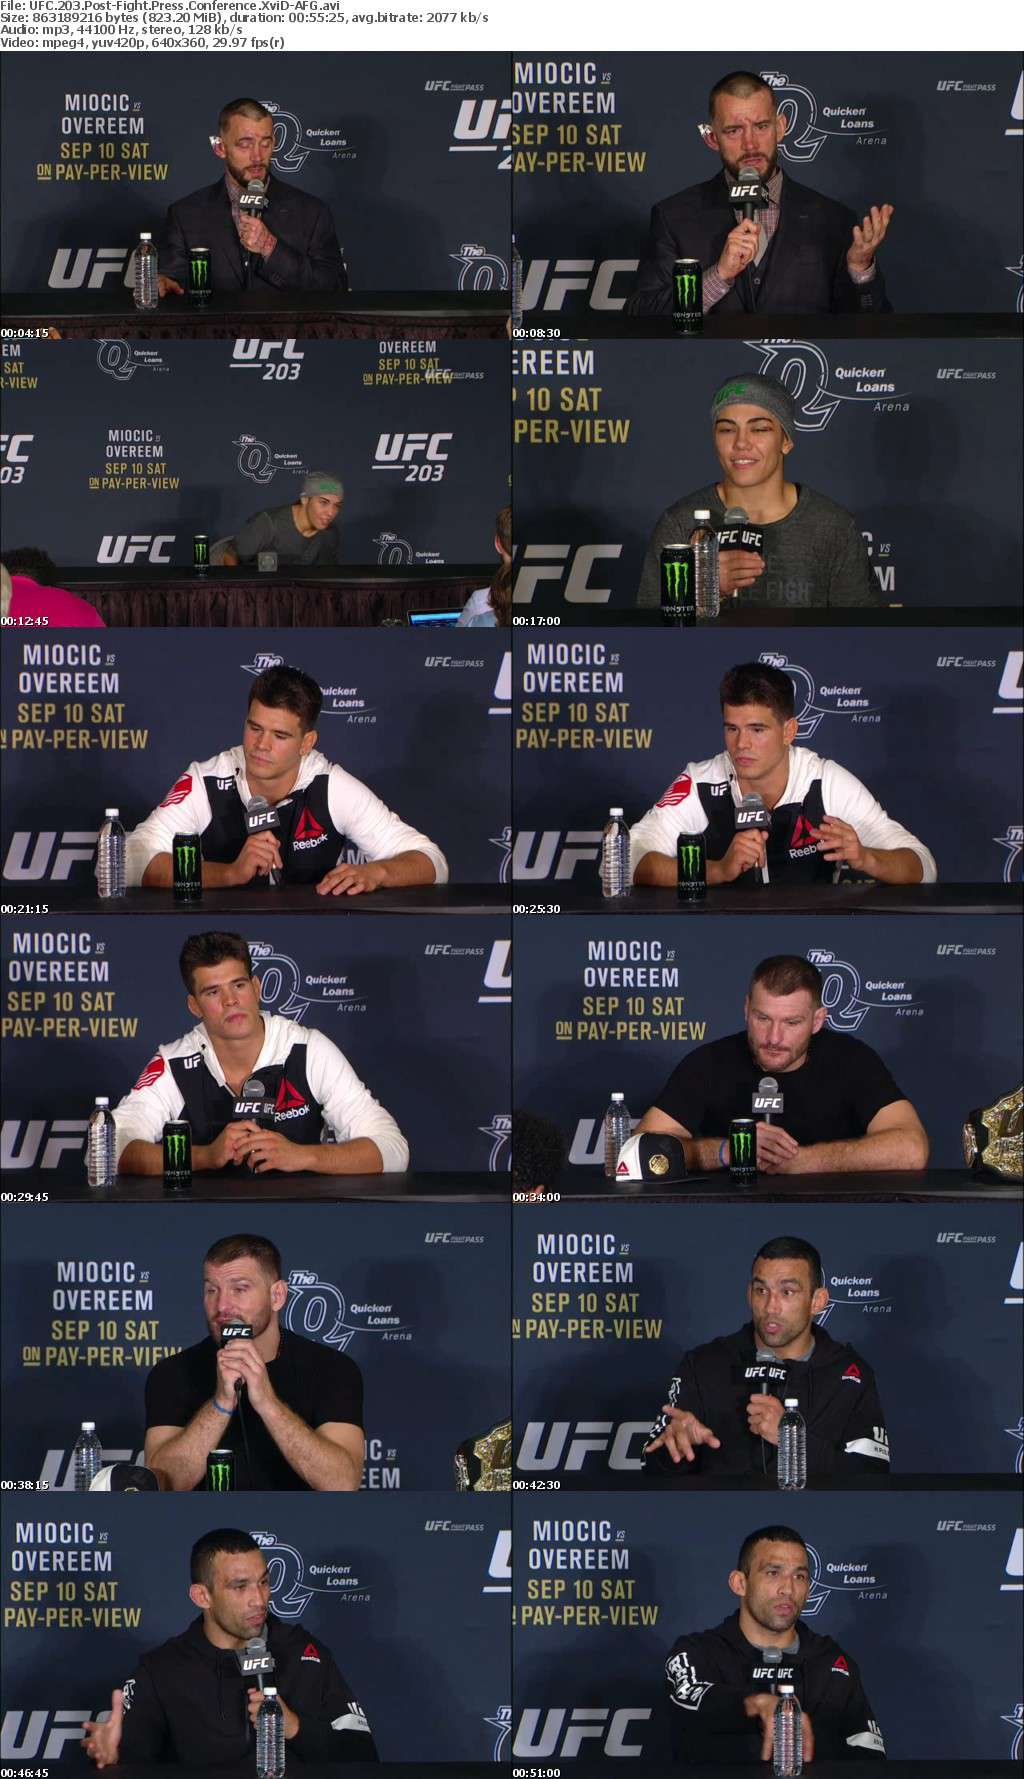 UFC 203 Post-Fight Press Conference XviD-AFG